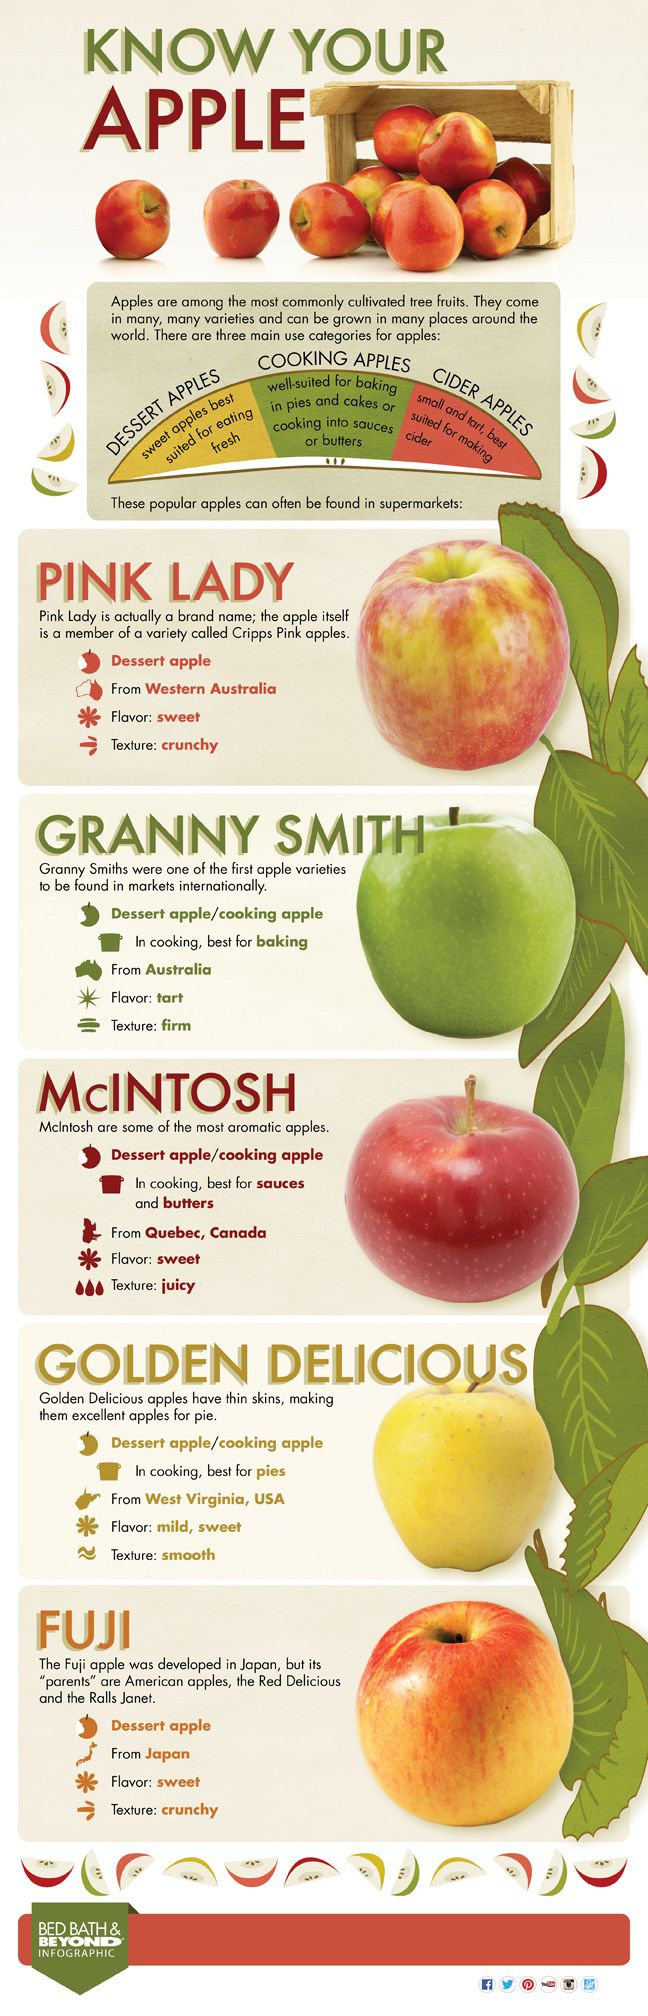 Know Your Apple [Infographic]